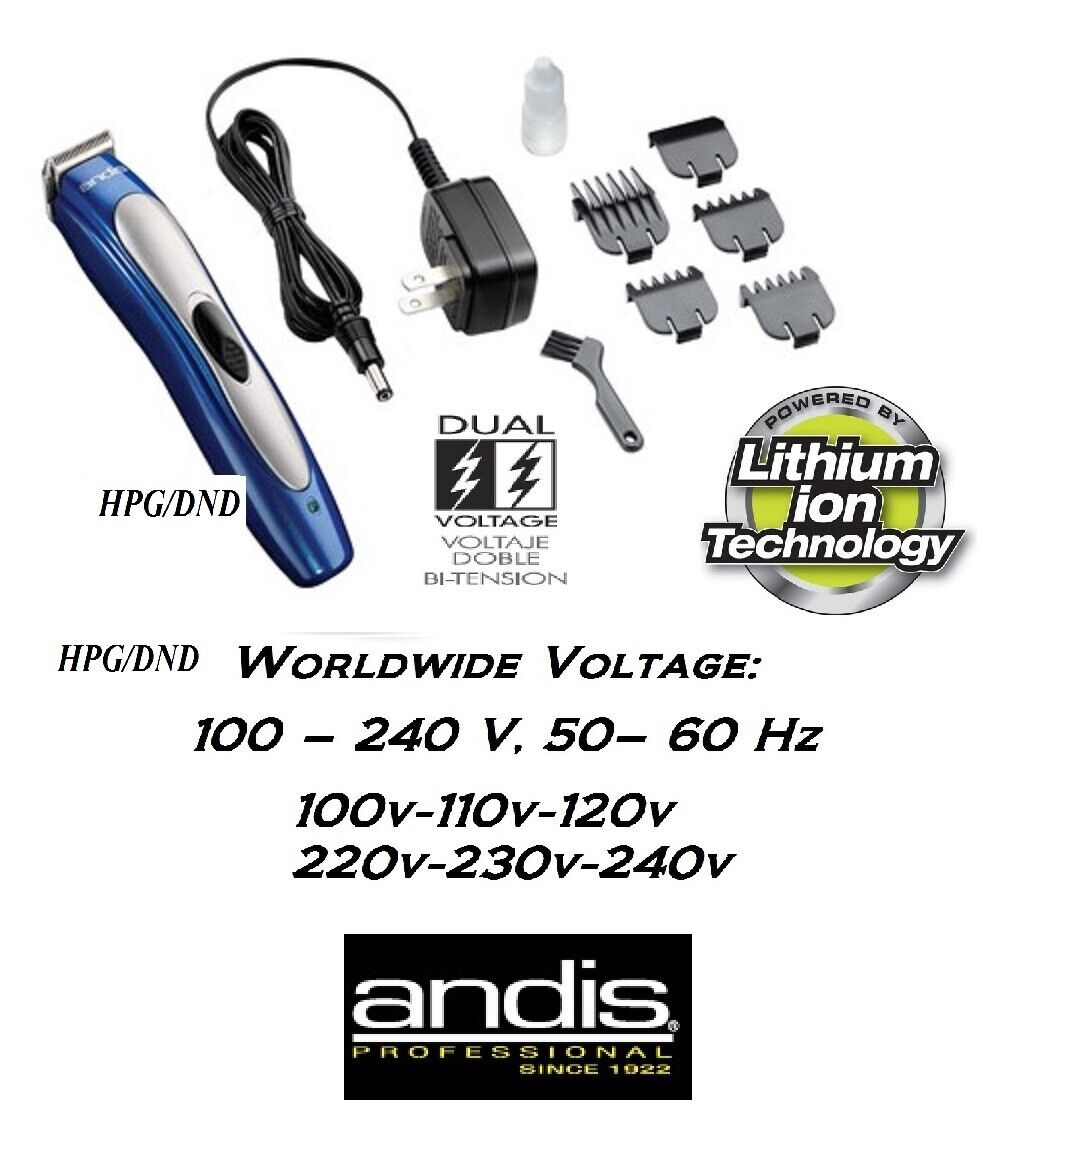 Andis LITHIUM ION CORDLESS or Corded Use RECHARGEABLE Trimmer Clipper & COMB SET